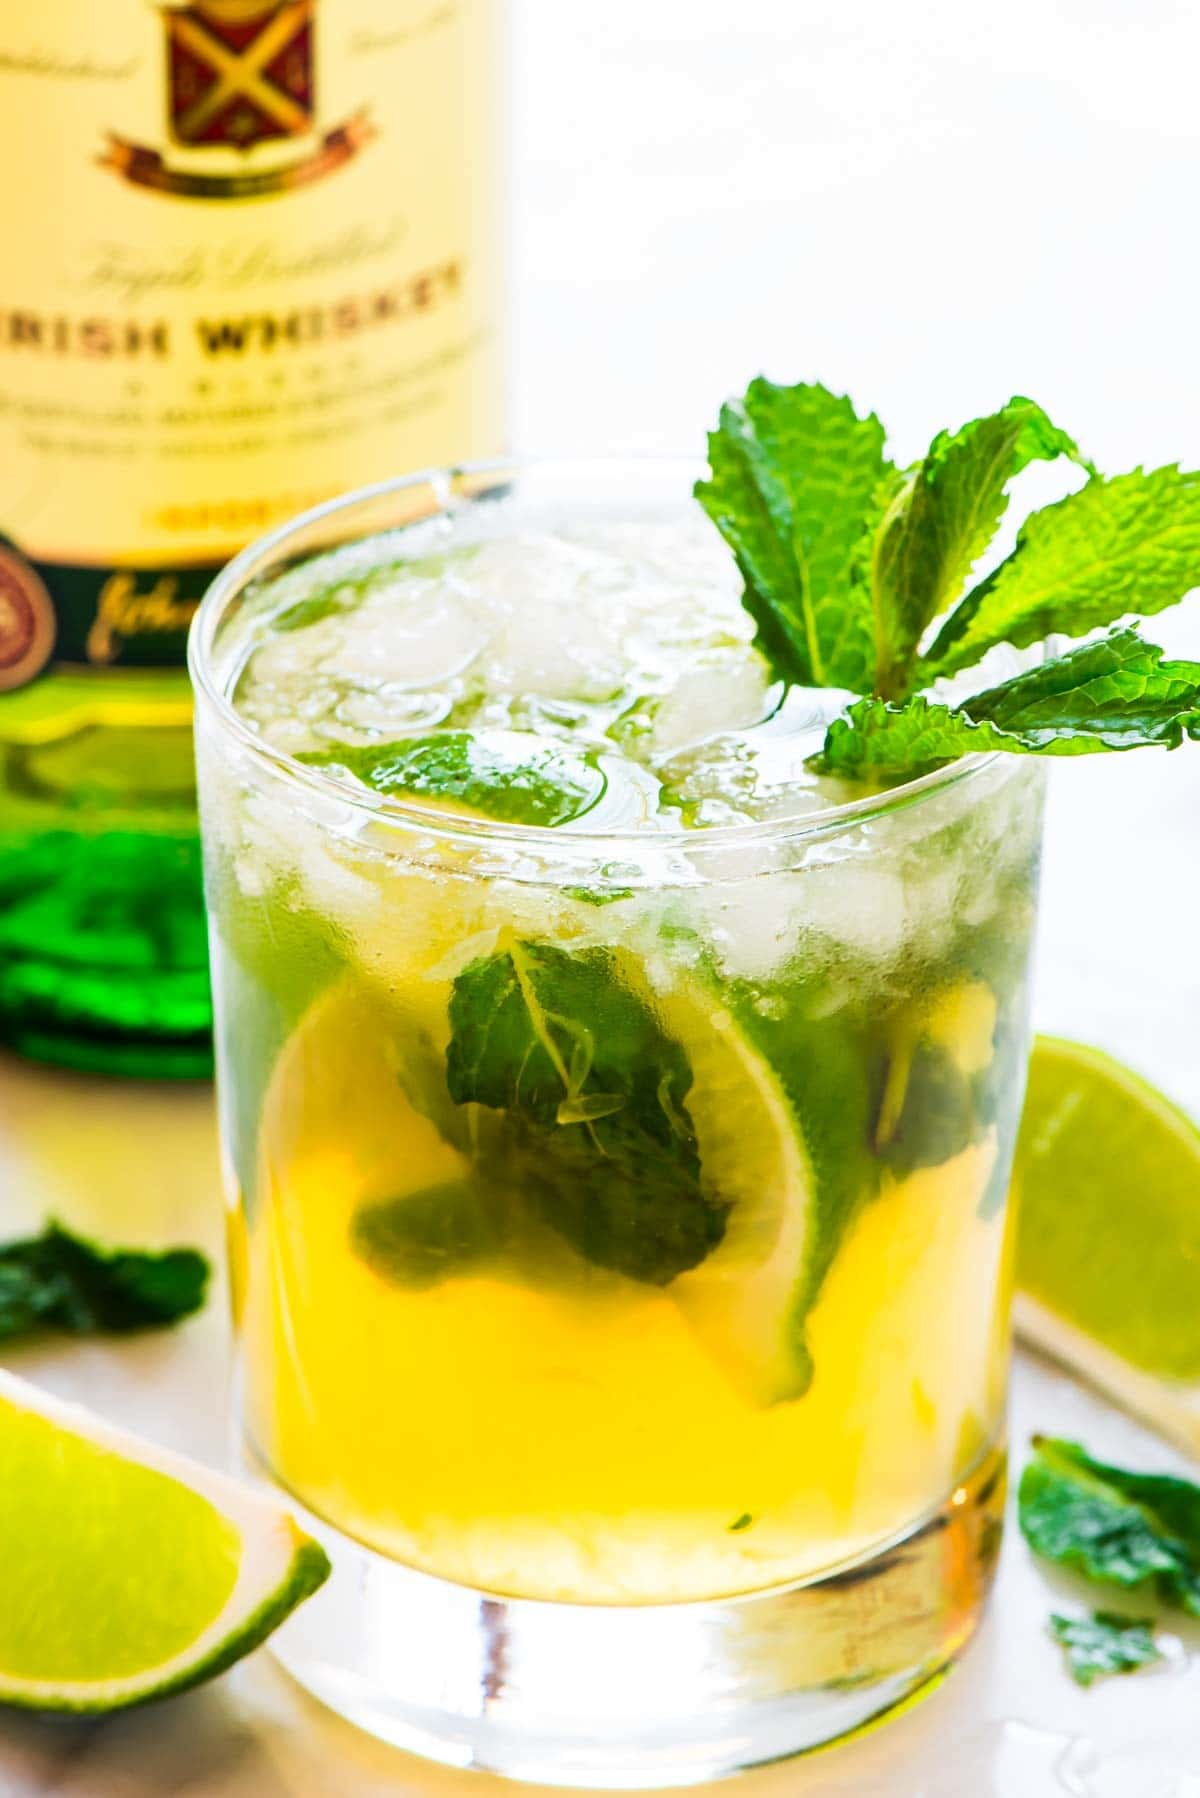 A green cocktail with mint leaves